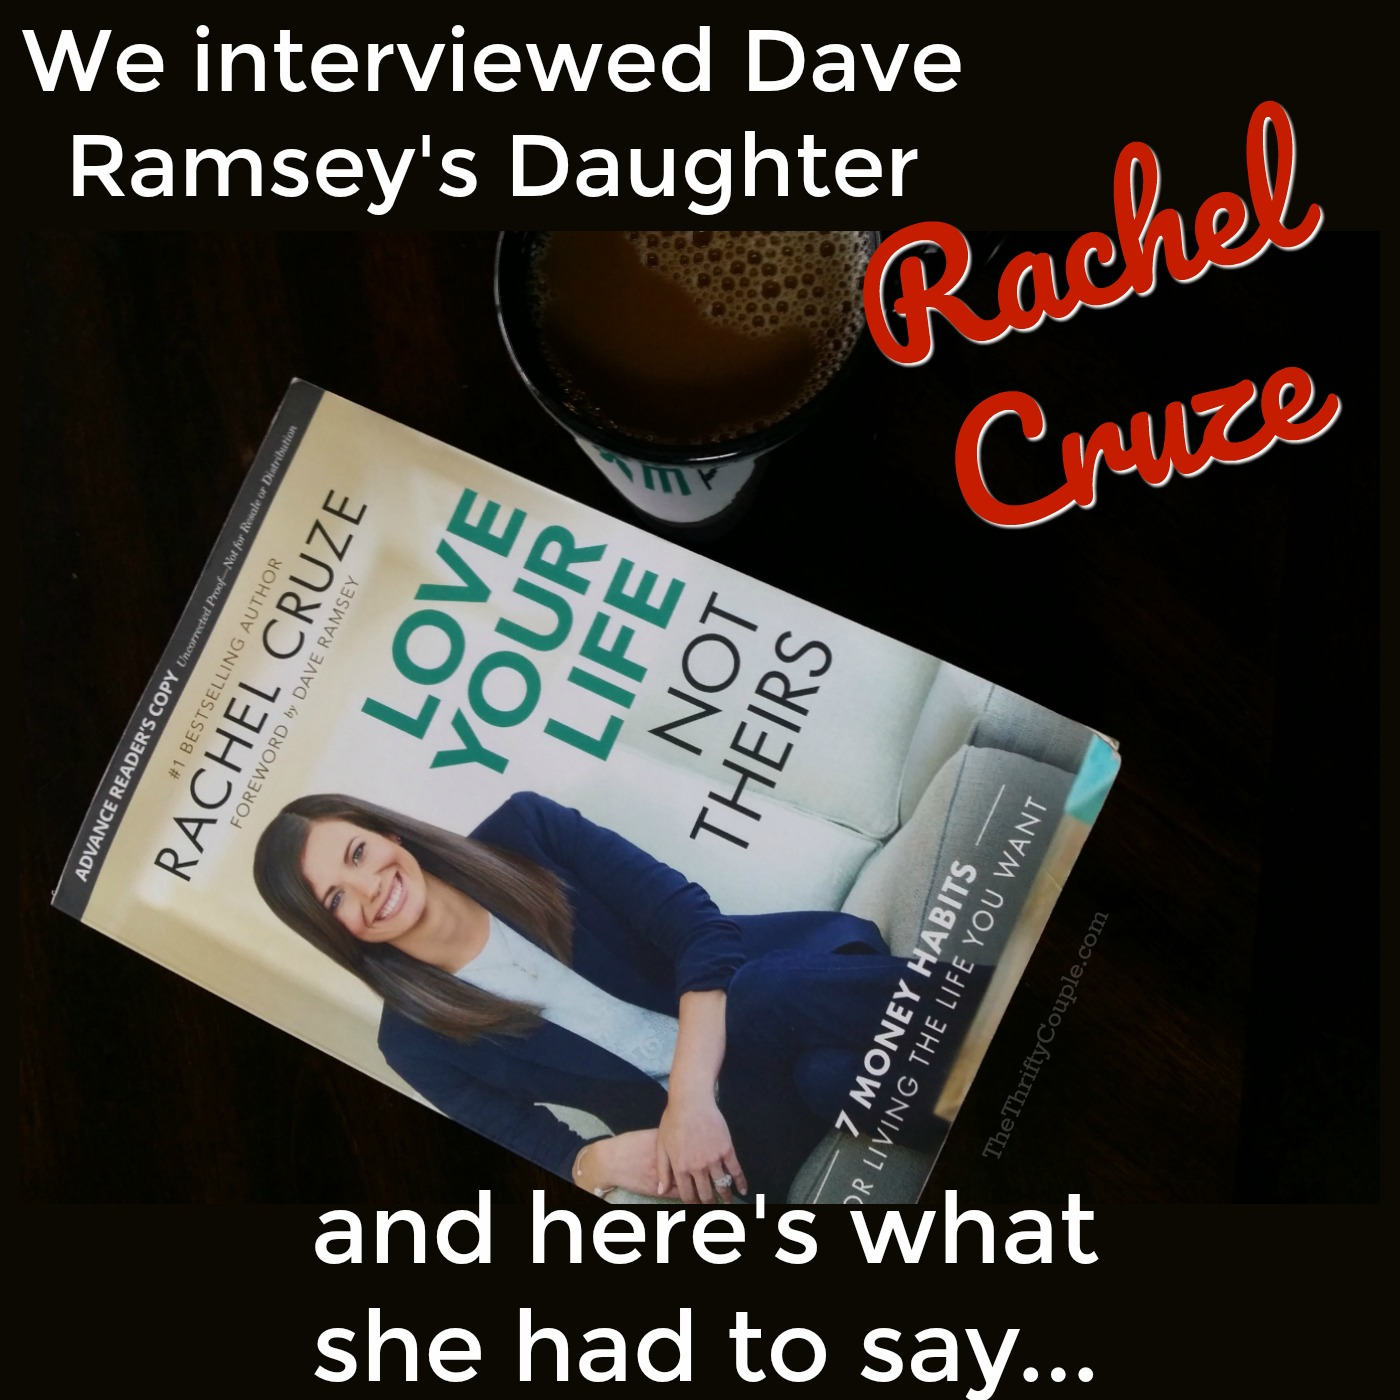 TTC 009 We Interviewed Dave Ramsey's Daughter Rachel Cruze and Here's What She Had to Say